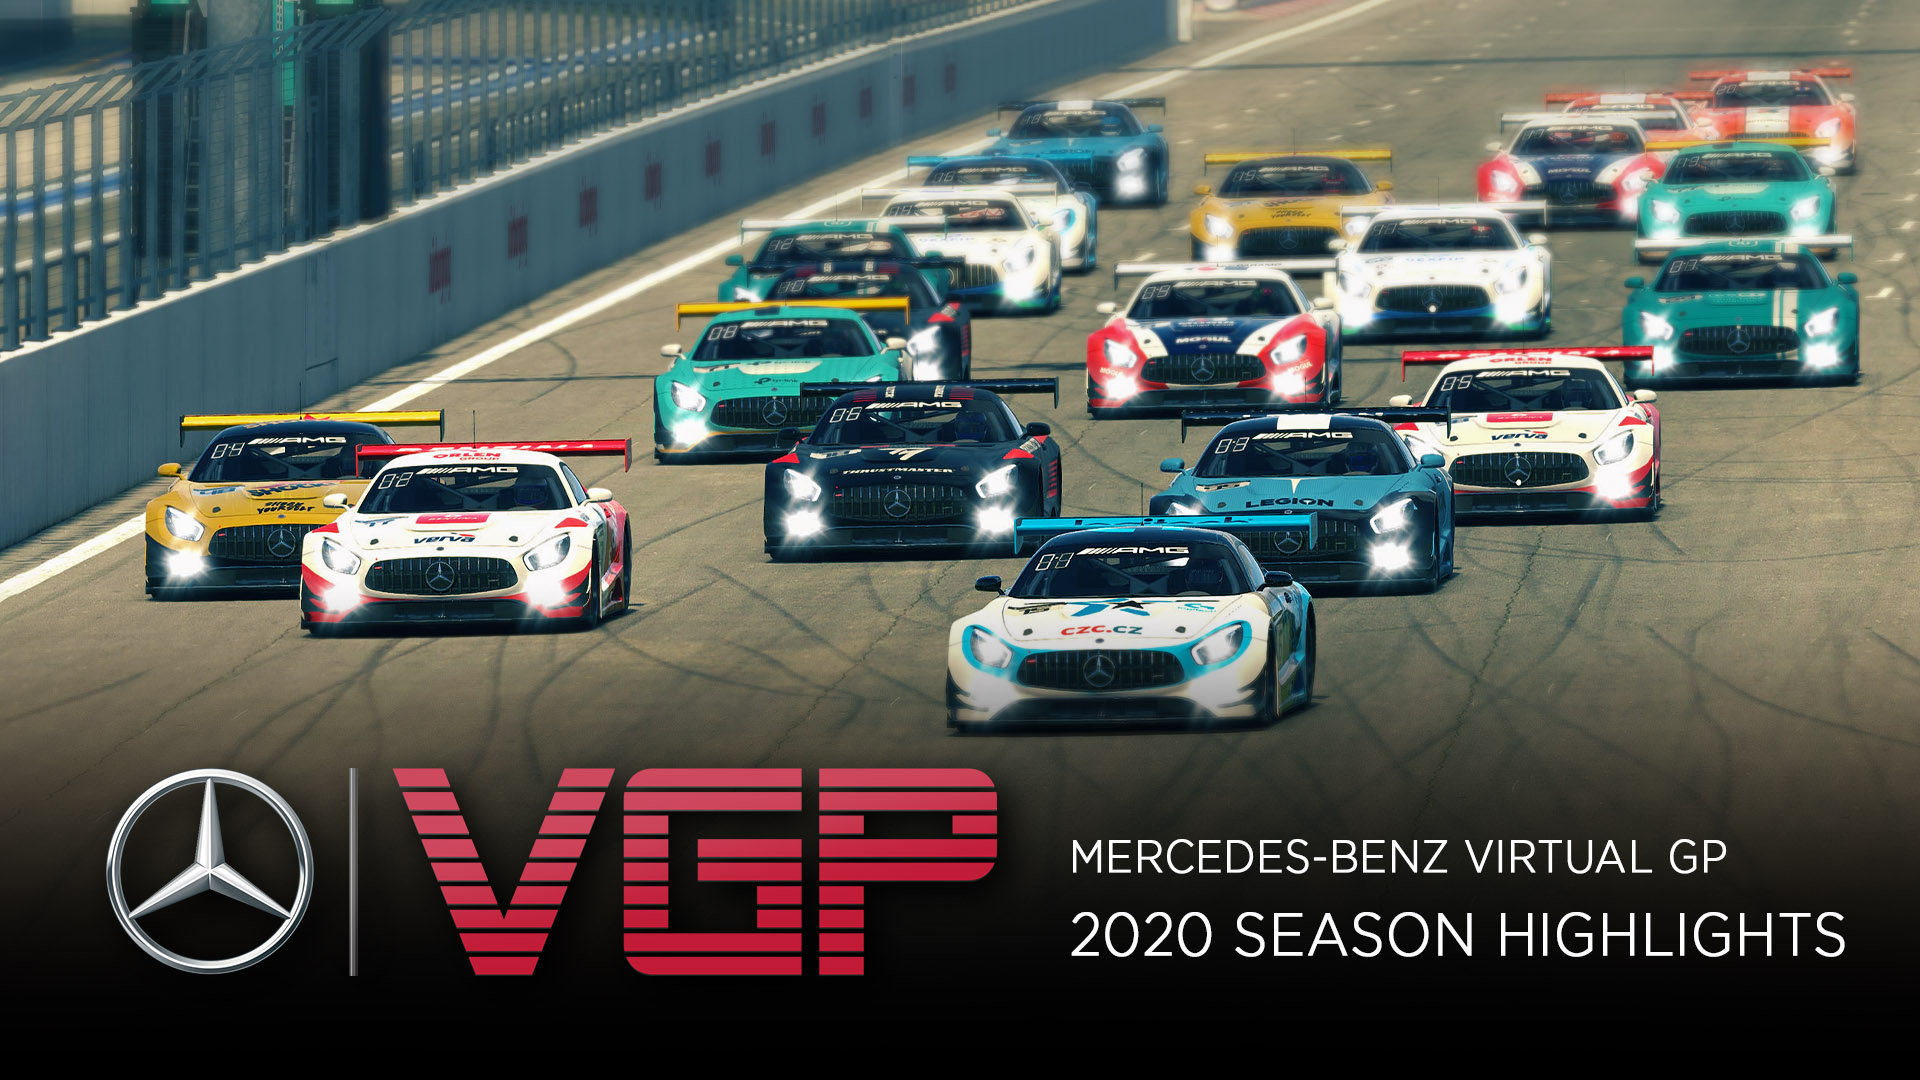 Mercedes-Benz Virtual GP 2020 Season Highlights